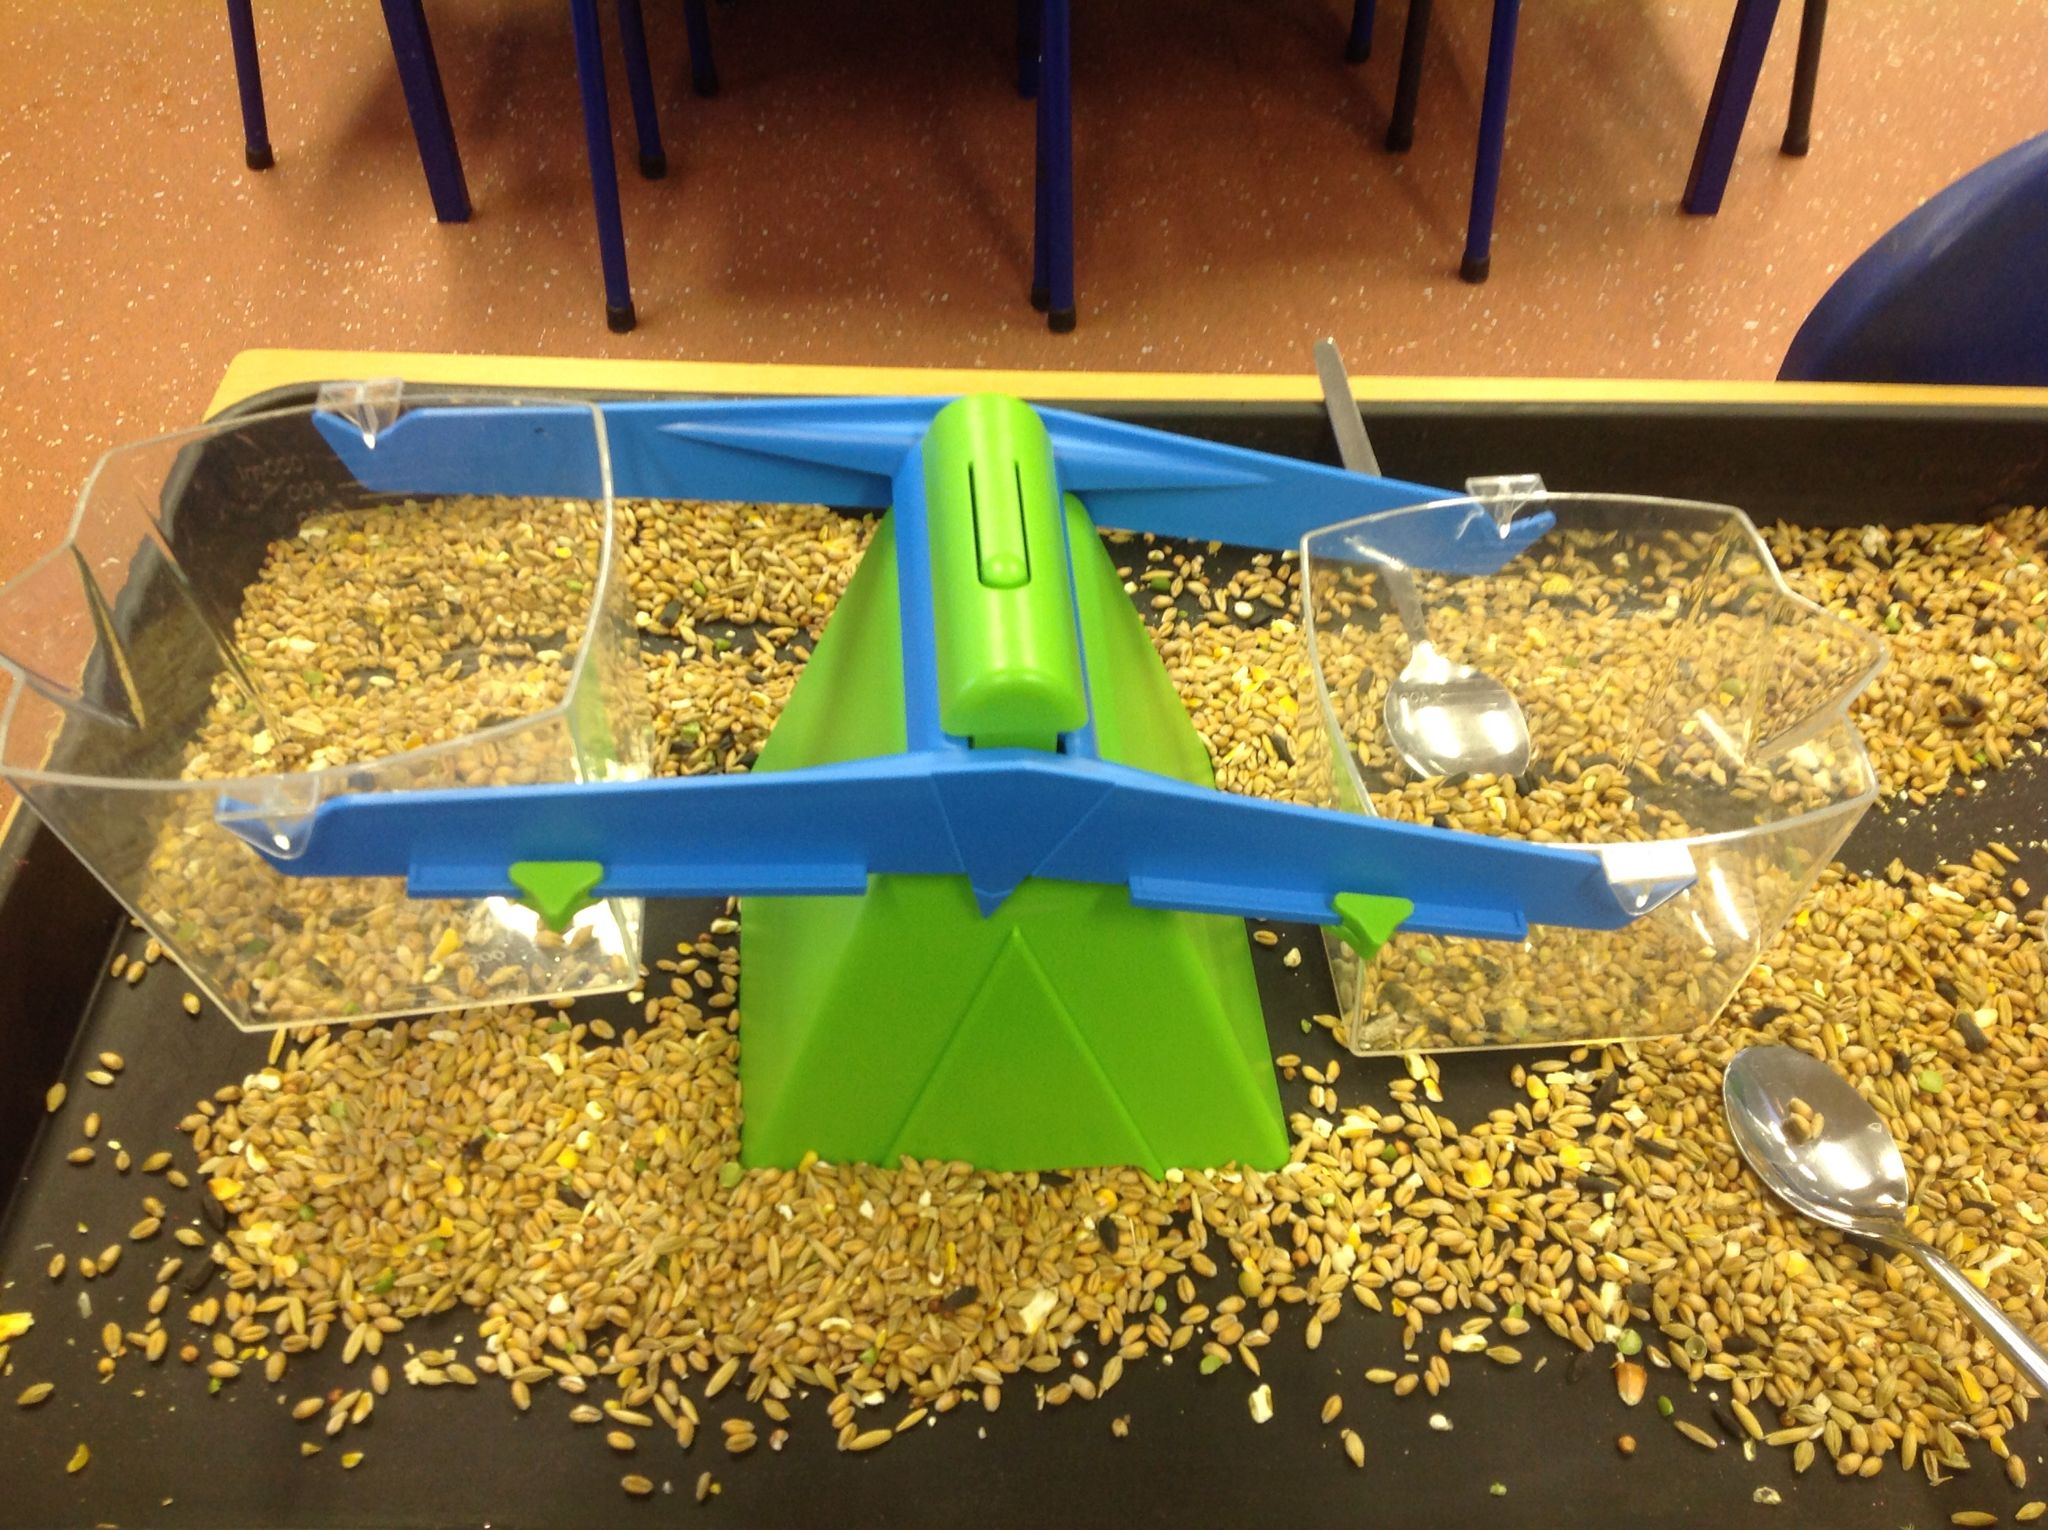 colour mixing activities eyfs : Shape Space And Measure Activities Eyfs Weight Activities Eyfs Shape Space And Measure Eyfs Bird Activities Preschool The Enormous Turnip Activities